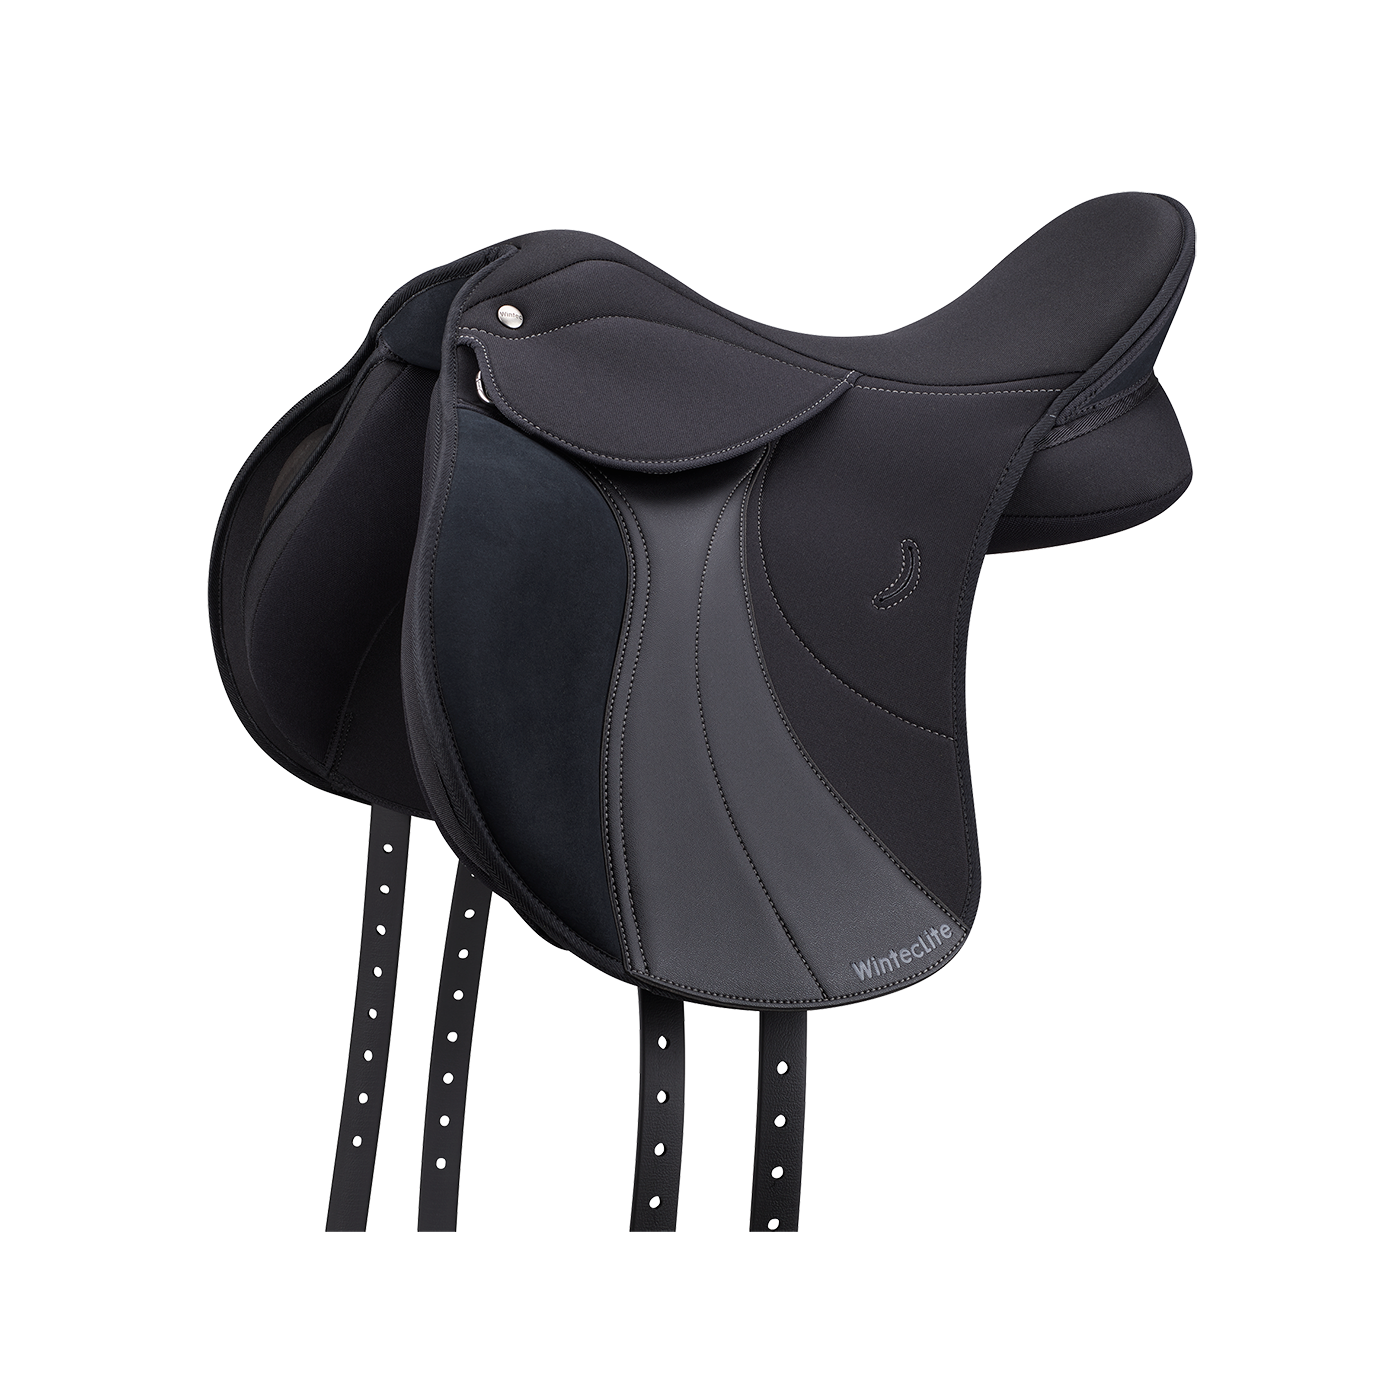 WintecLite Pony All Purpose - 360:32016881680444,31033047842876